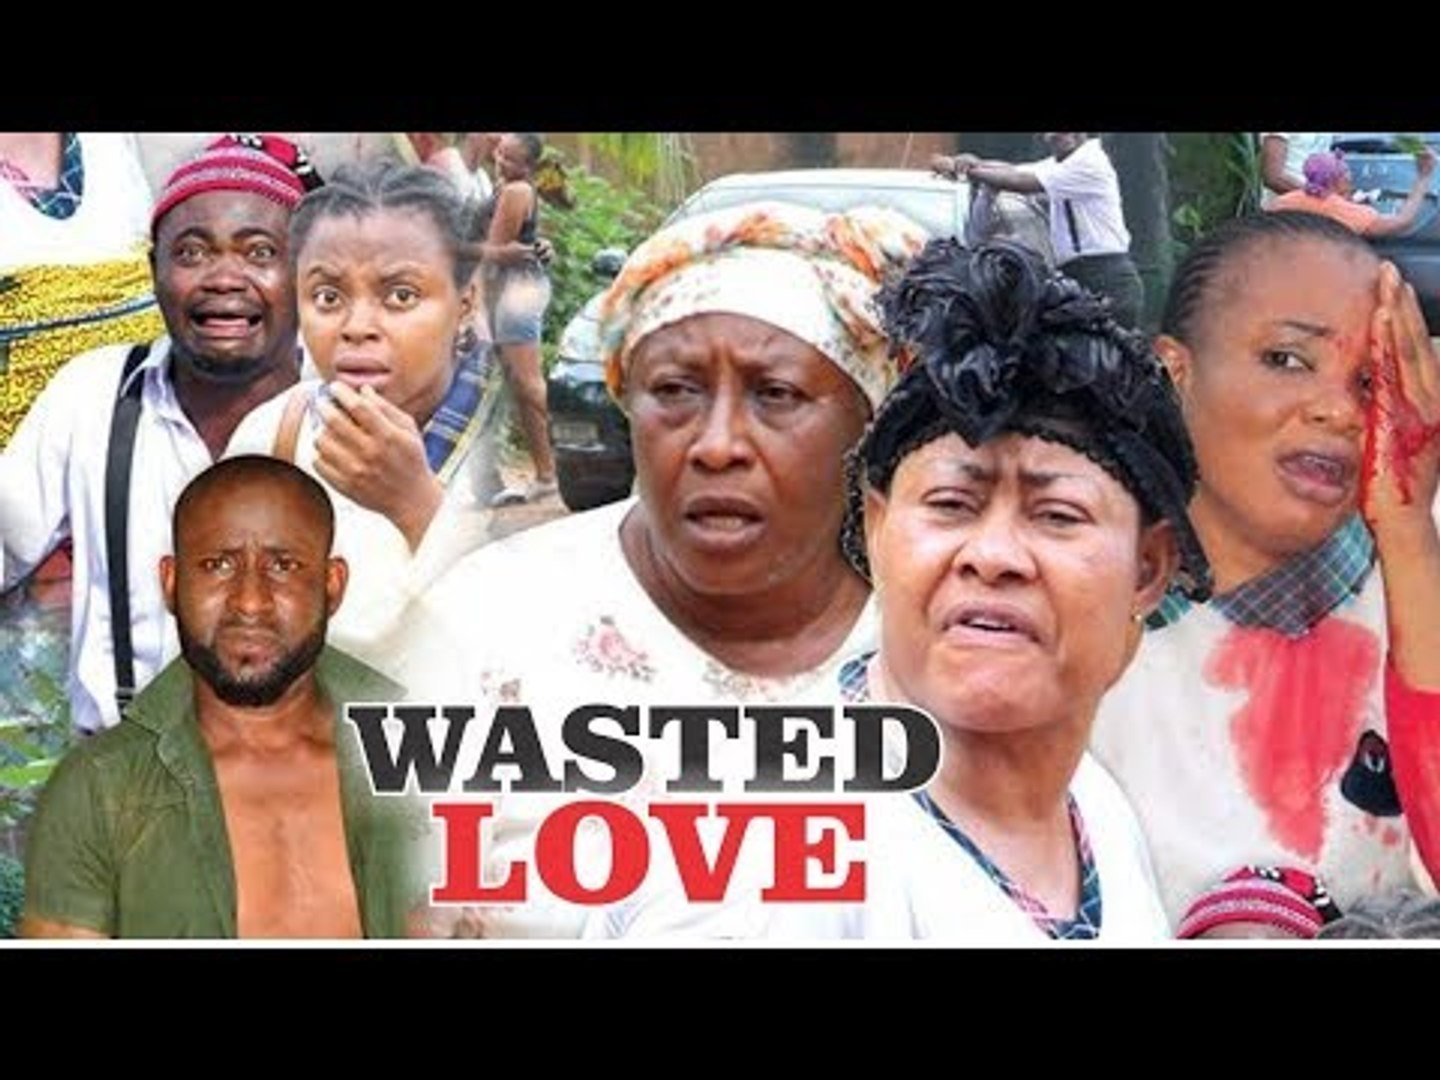 WASTED LOVE - LATEST NIGERIAN NOLLYWOOD MOVIES || TRENDING NOLLYWOOD MOVES